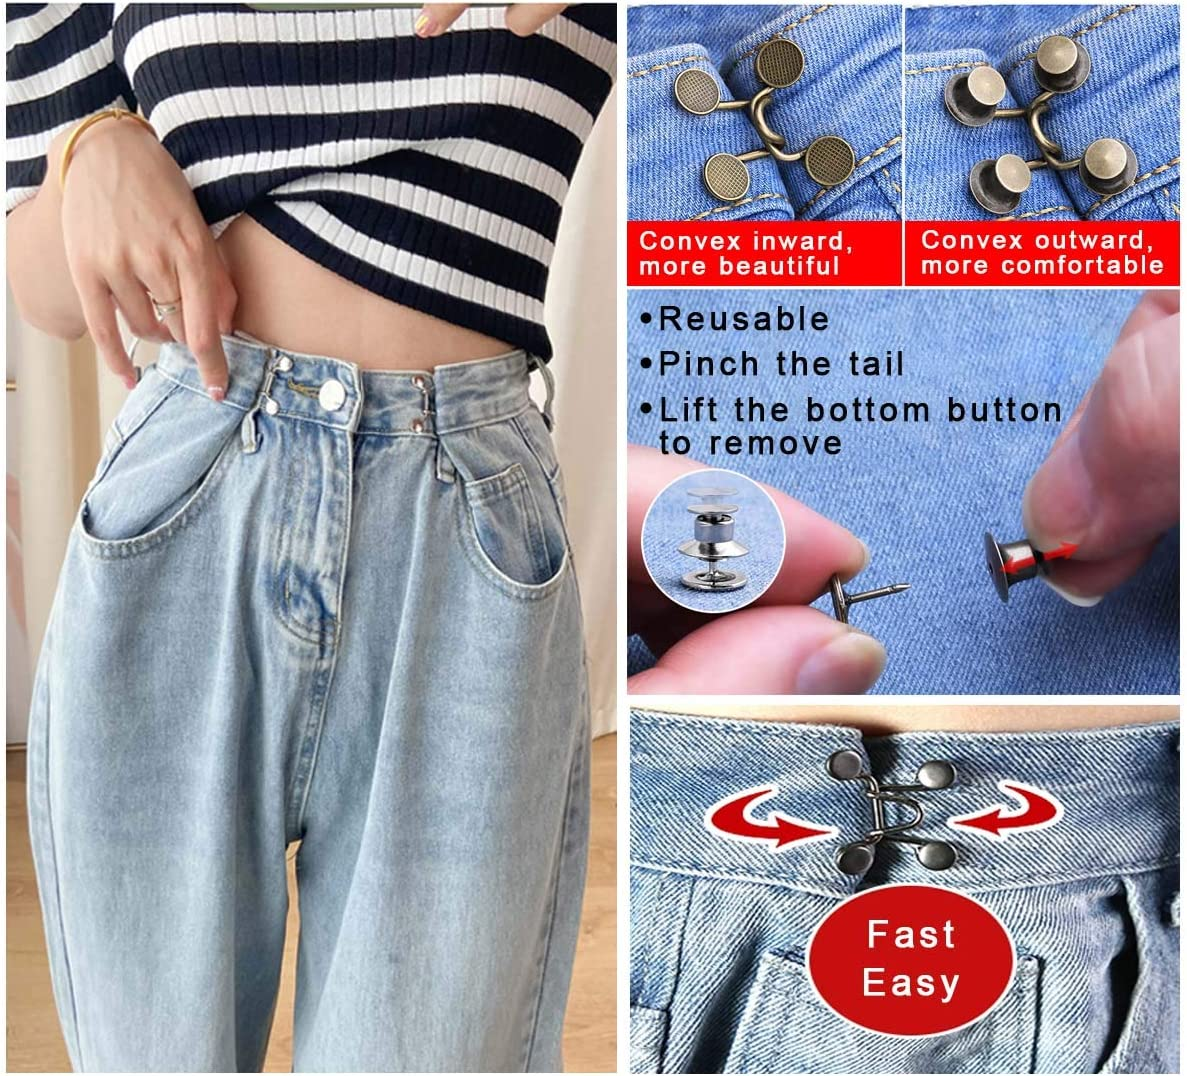 Premium 4 Pairs Adjustable Waist Buckle Extender Set Jeans Extender Waist Extender Button for Pants Jeans 24pcs Upgraded Adjustable Nail-Free Waist Buckles Golden Reuseable Jean Buttons